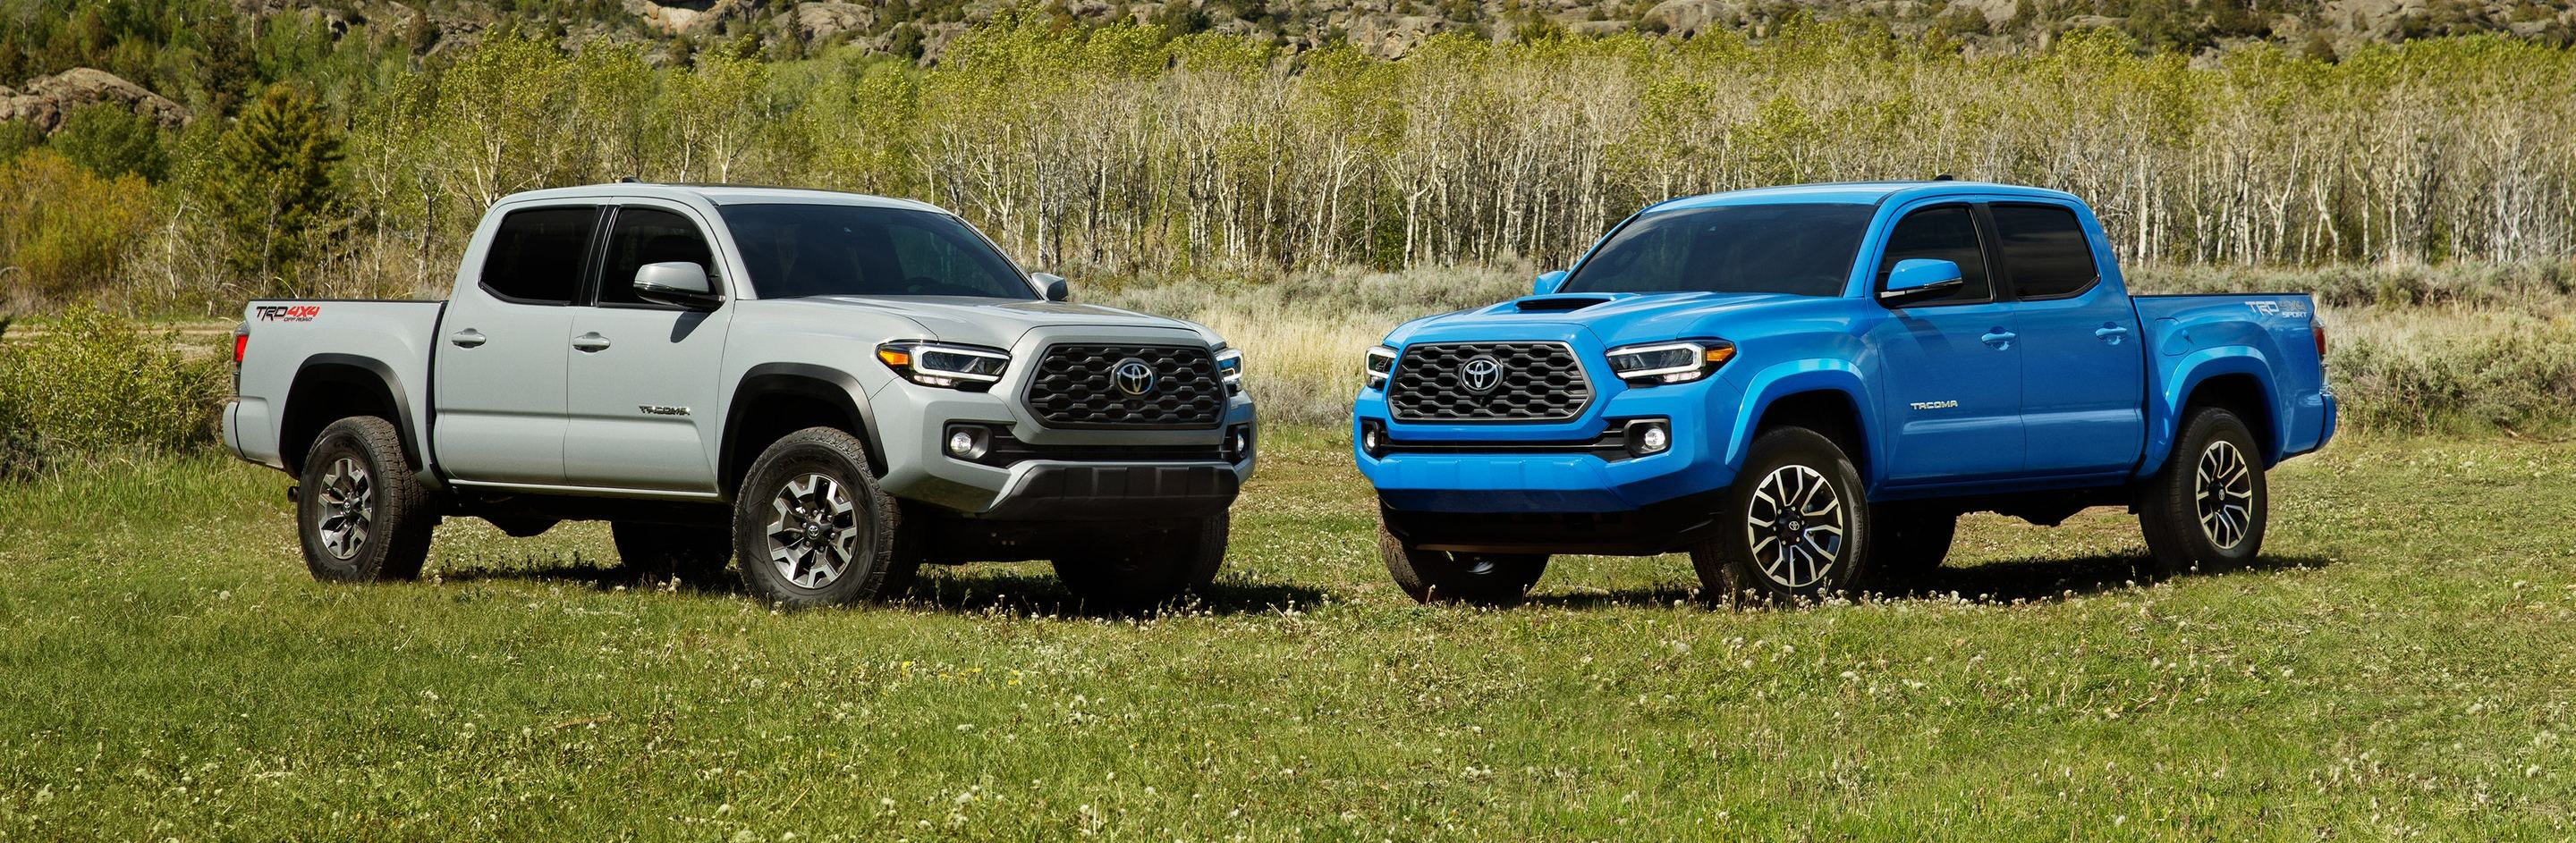 2020 Toyota Tacoma for Sale near Perrysburg, OH